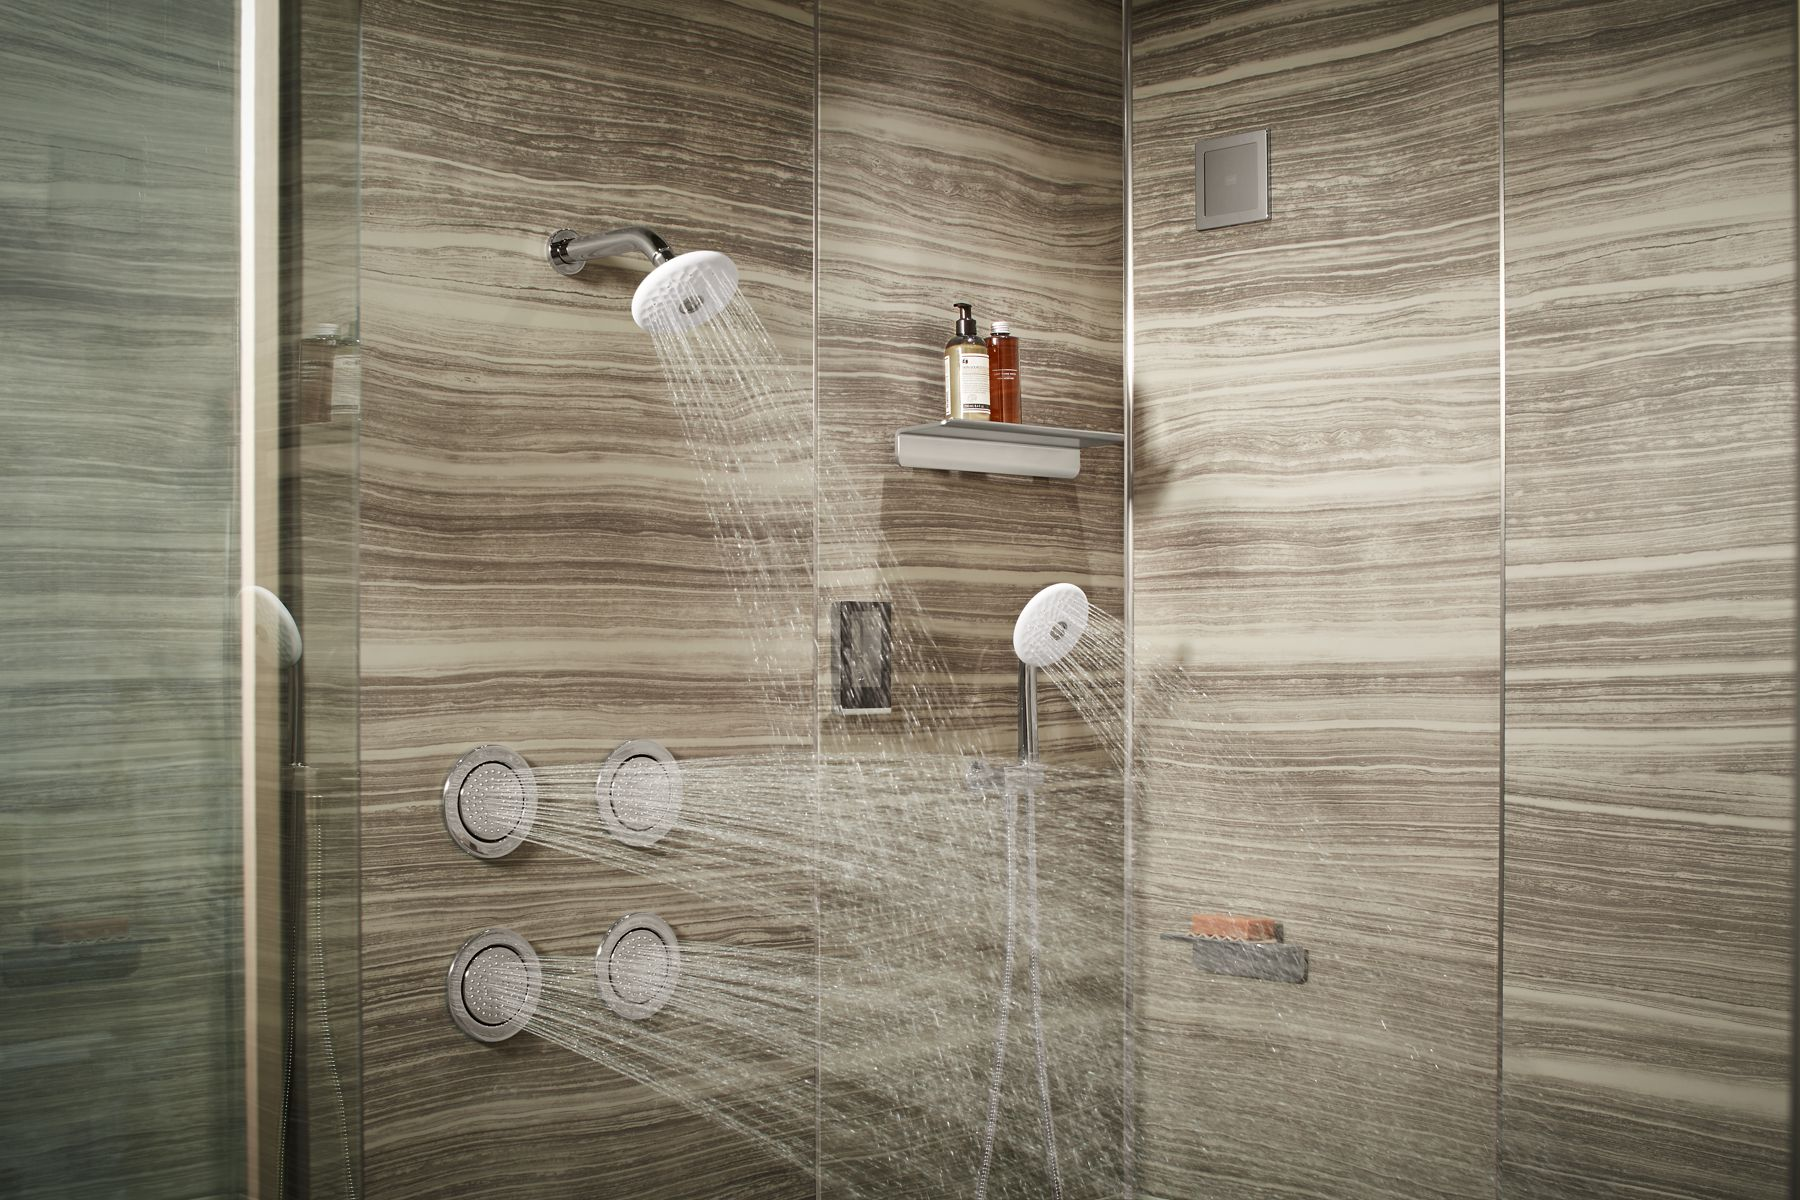 Choosing The Water Delivery Components For Your Shower Is So Much More Than  Finding A Look You Like. While There Are A Number Of Things To Consider, ...